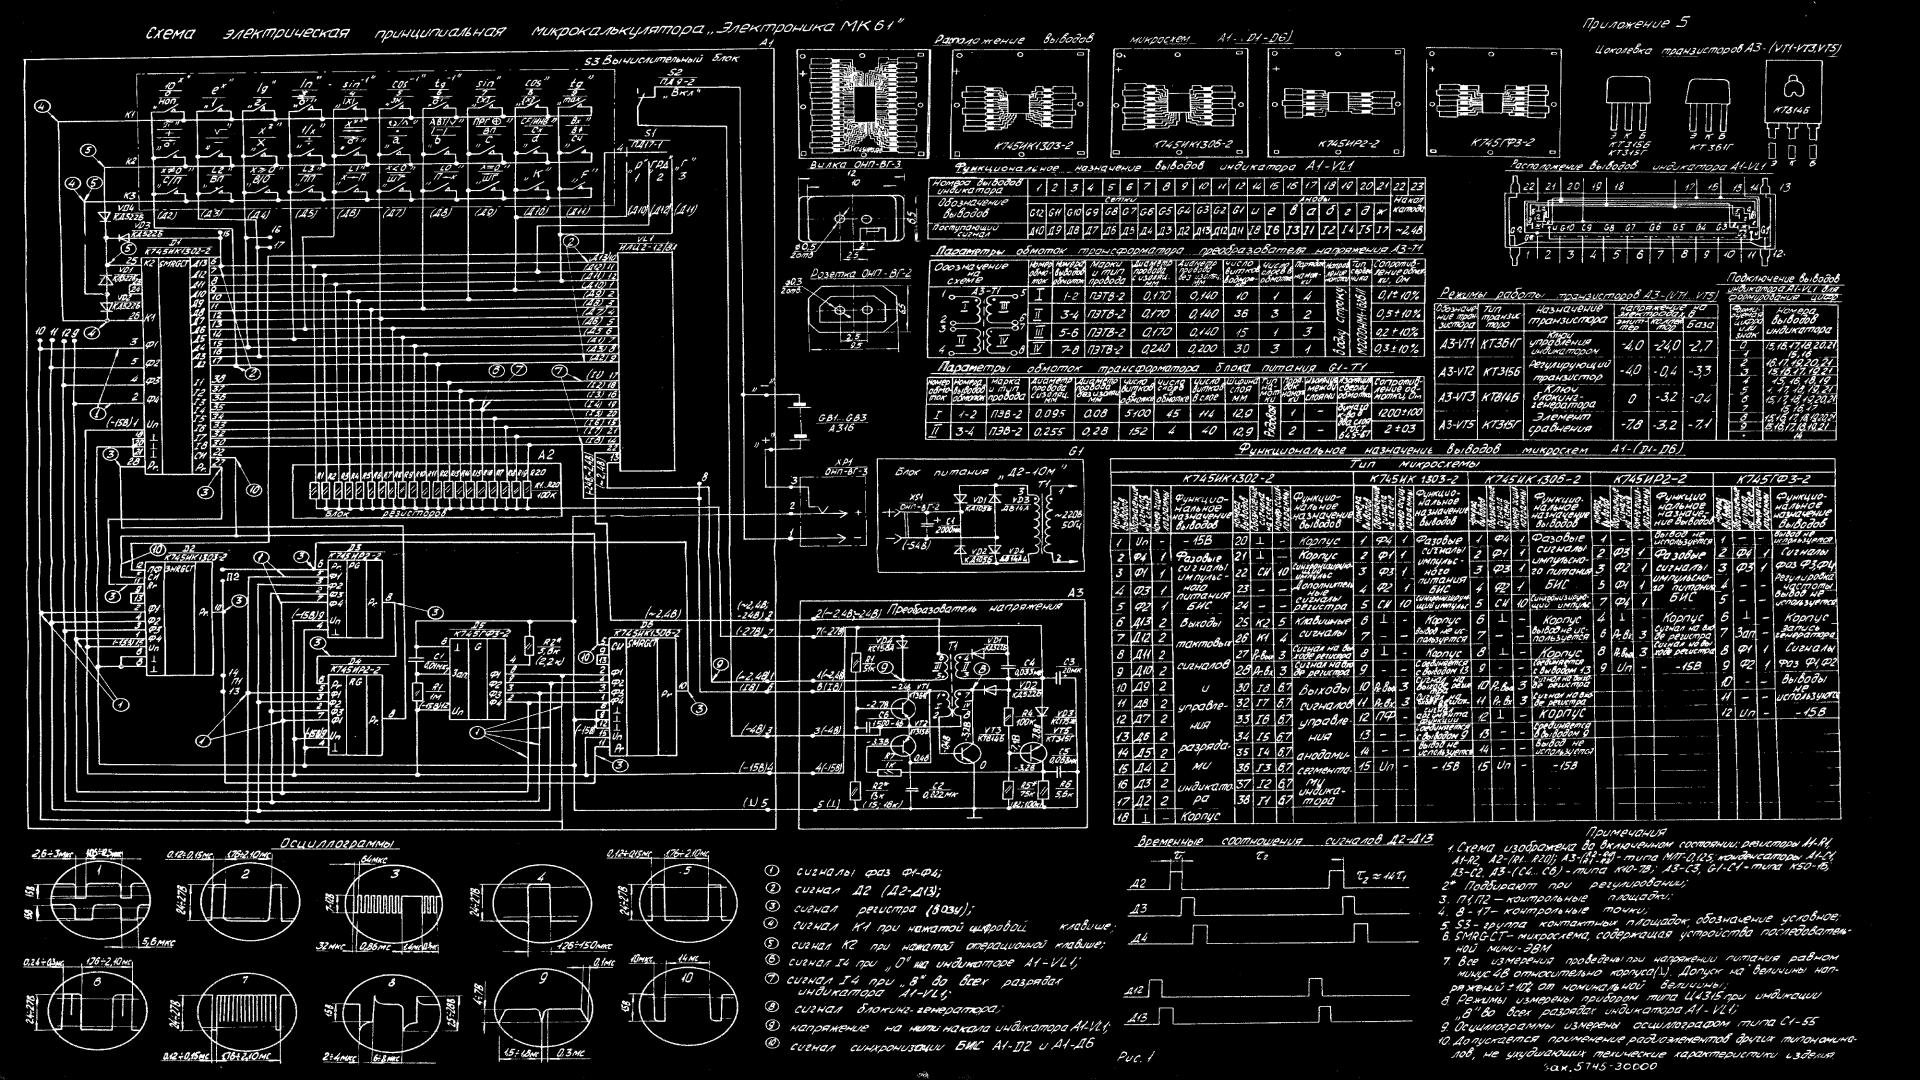 Schematic of a Russian MK61 calculator Full HD Wallpaper and